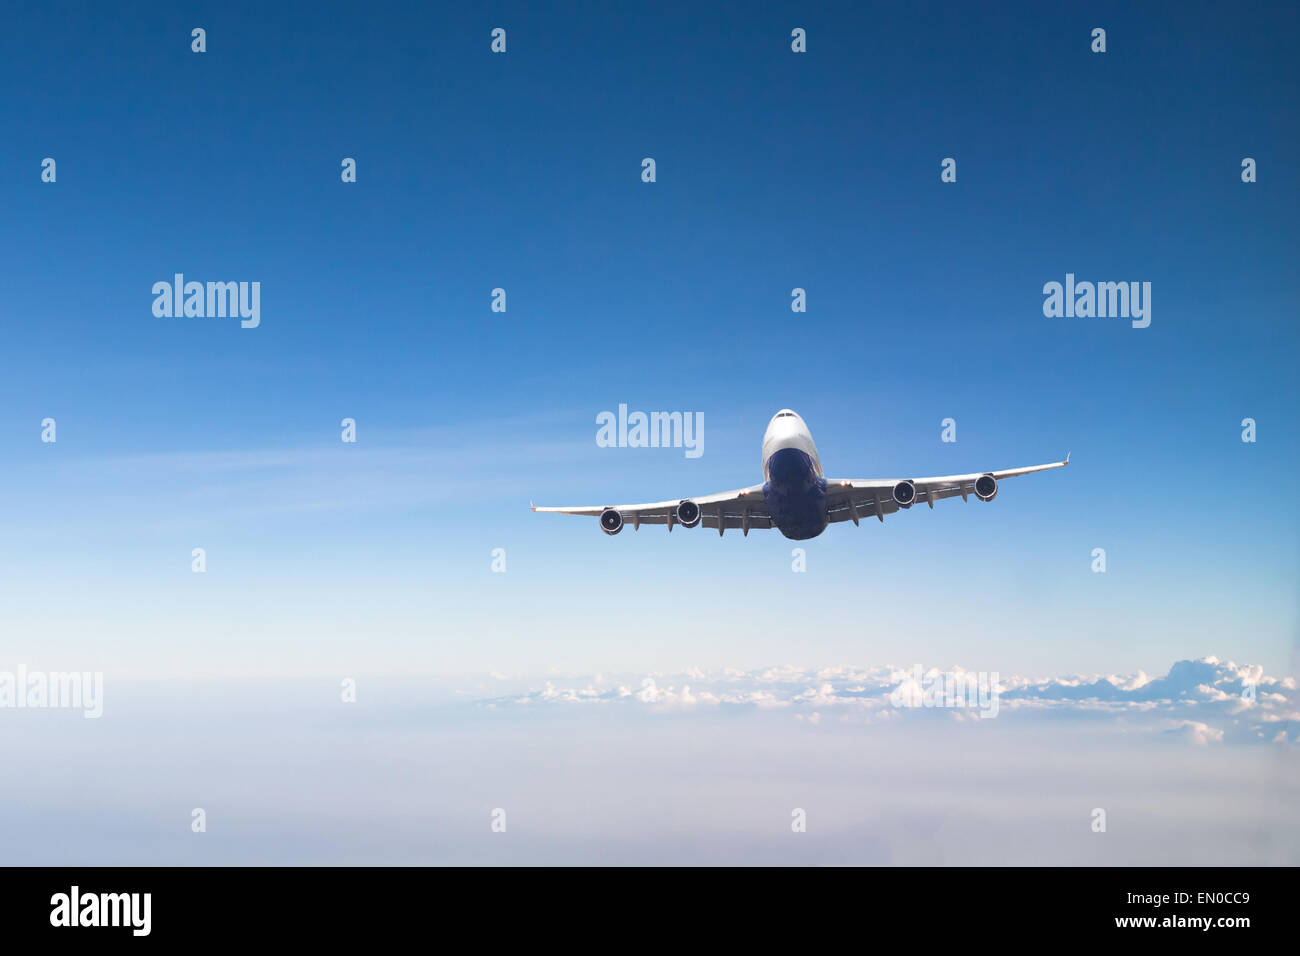 airplane in blue sky - Stock Image